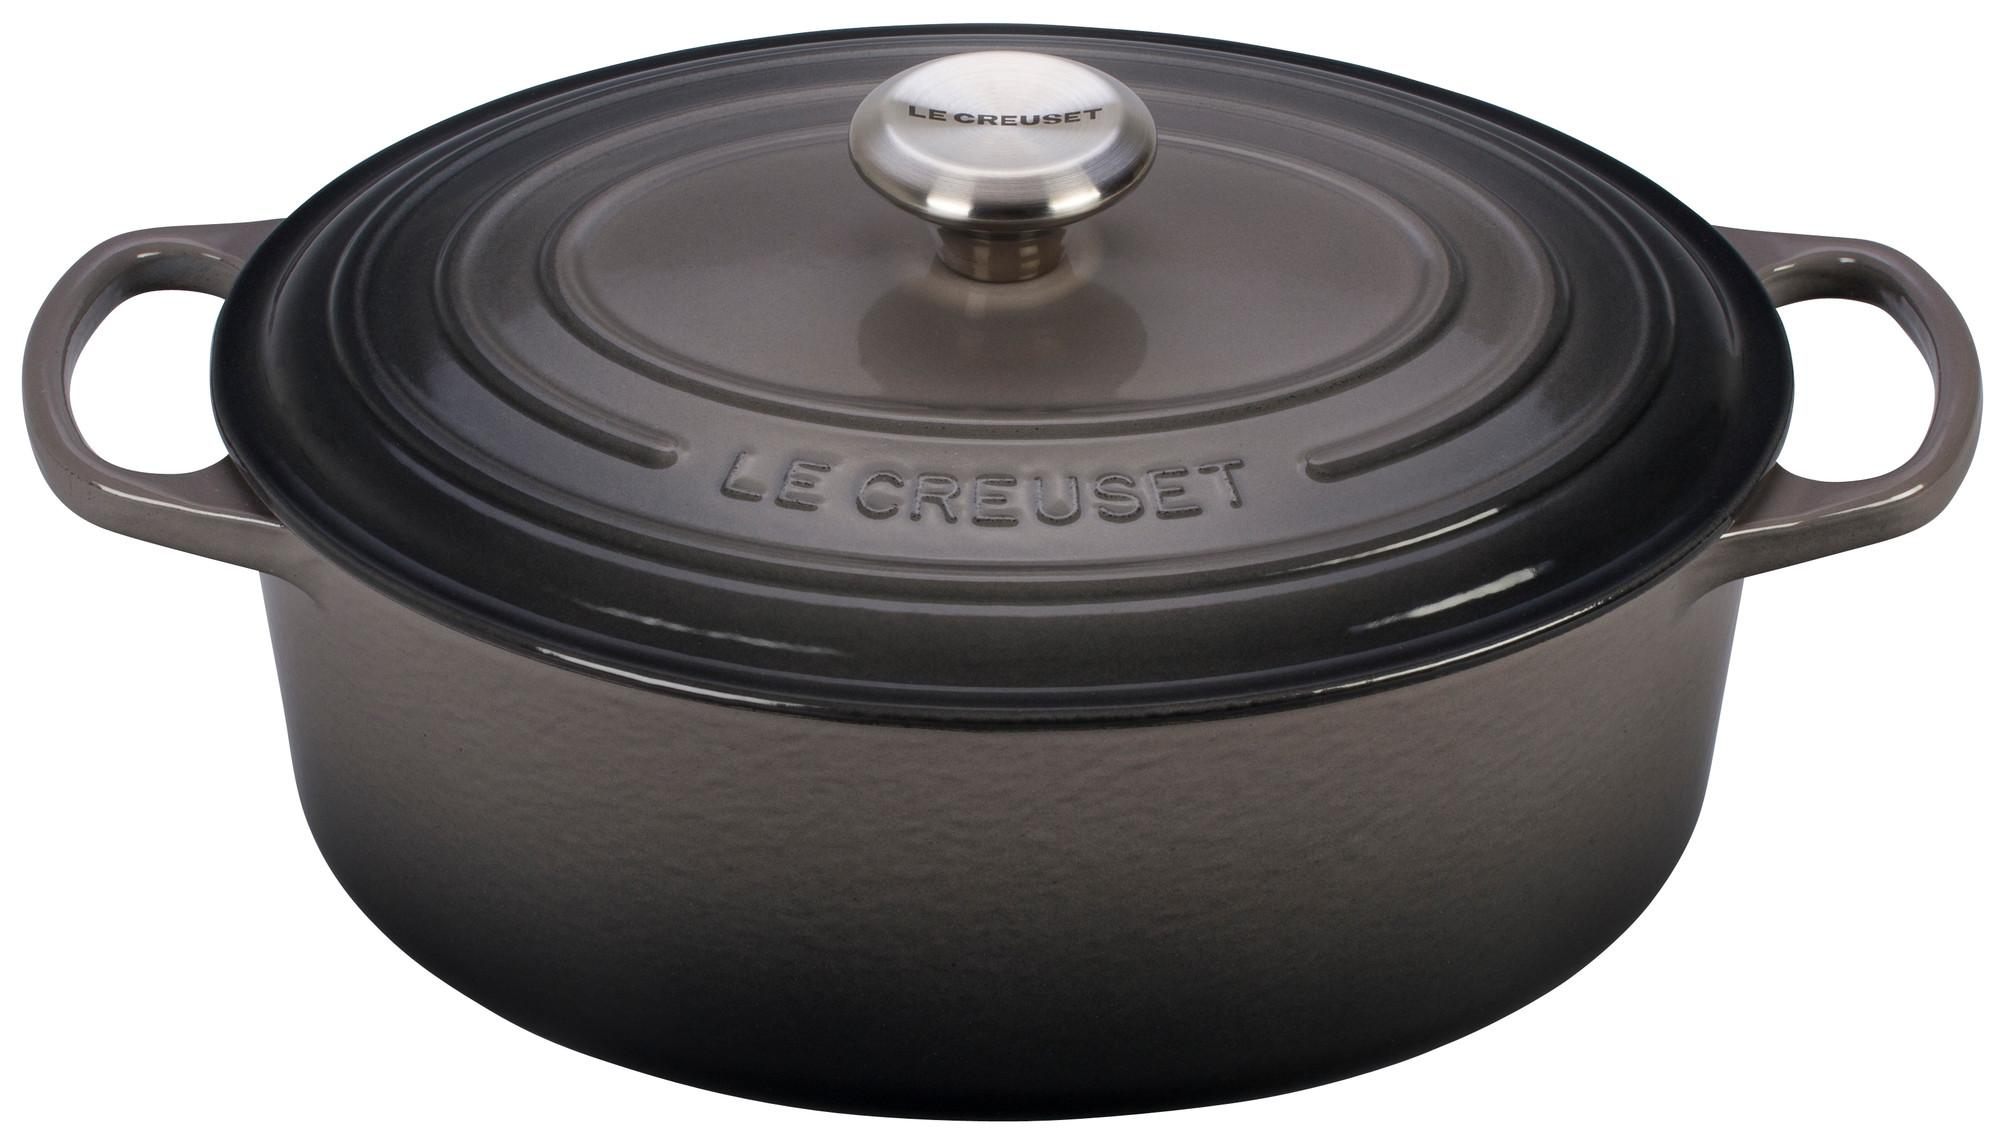 le creuset signature enameled cast iron 1 quart oval dutch french oven cerise. Black Bedroom Furniture Sets. Home Design Ideas